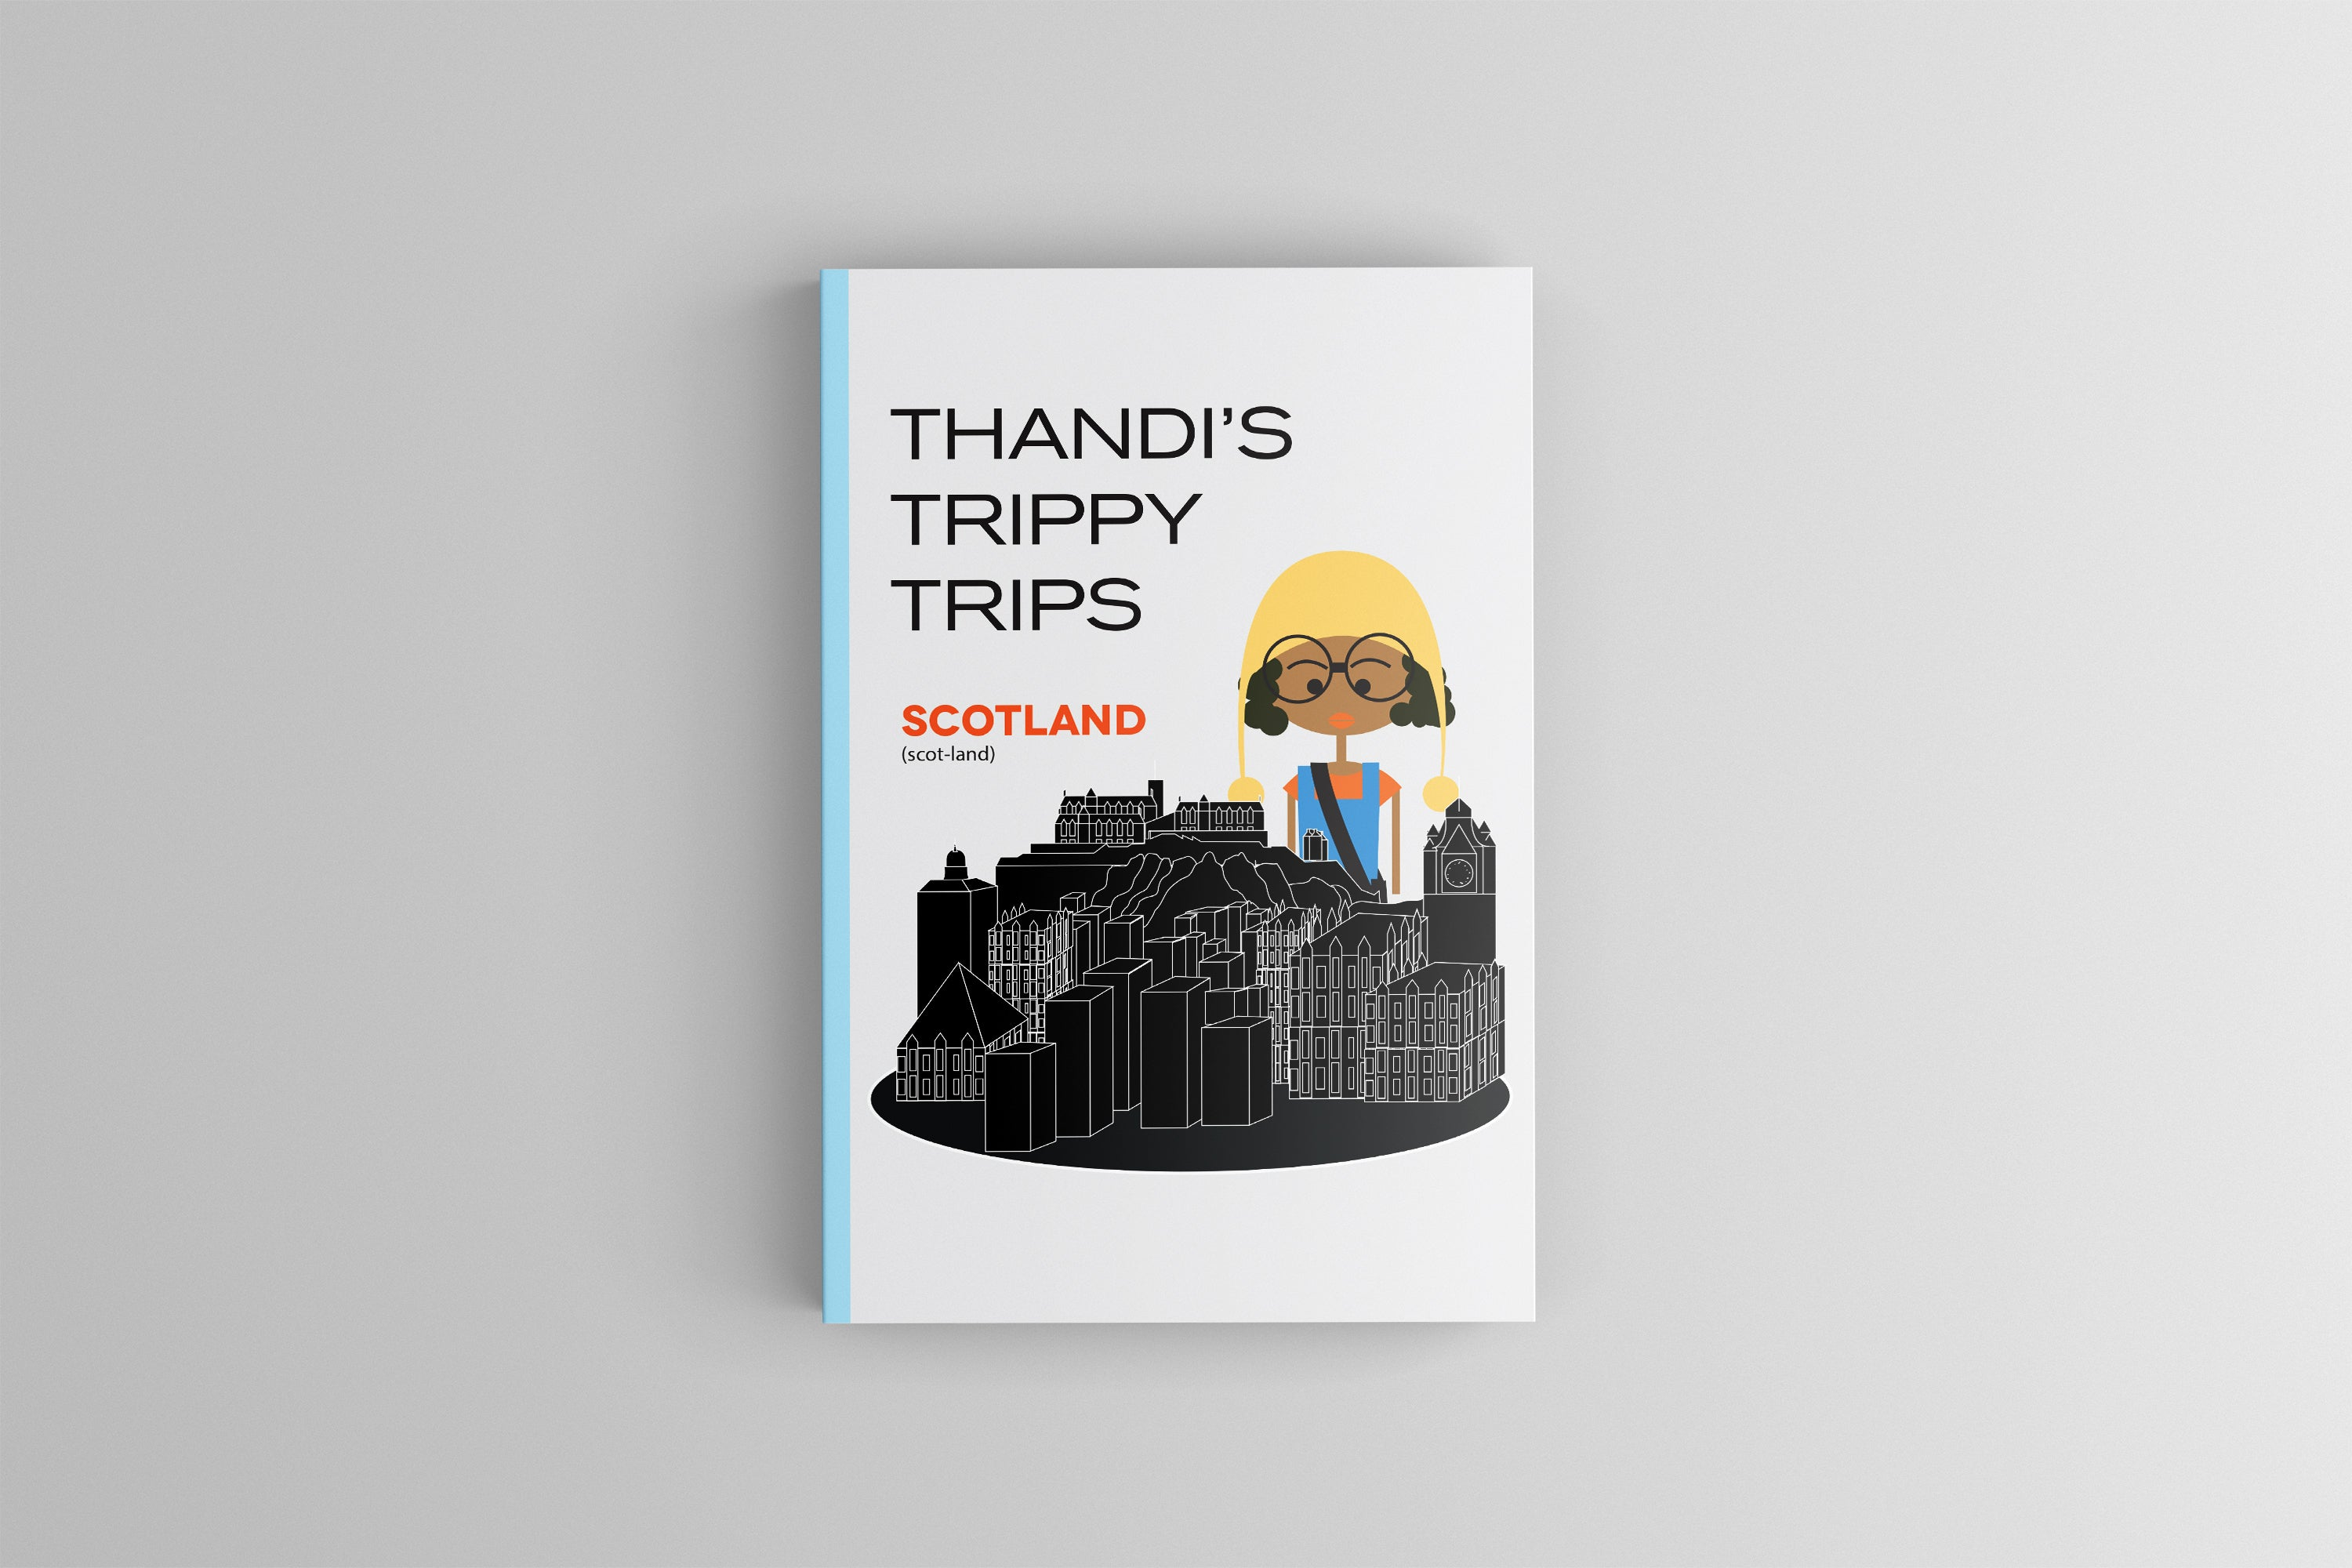 Thandi's Trippy Trips: Scotland. Volume 1 - Thandi's Trippy Trips